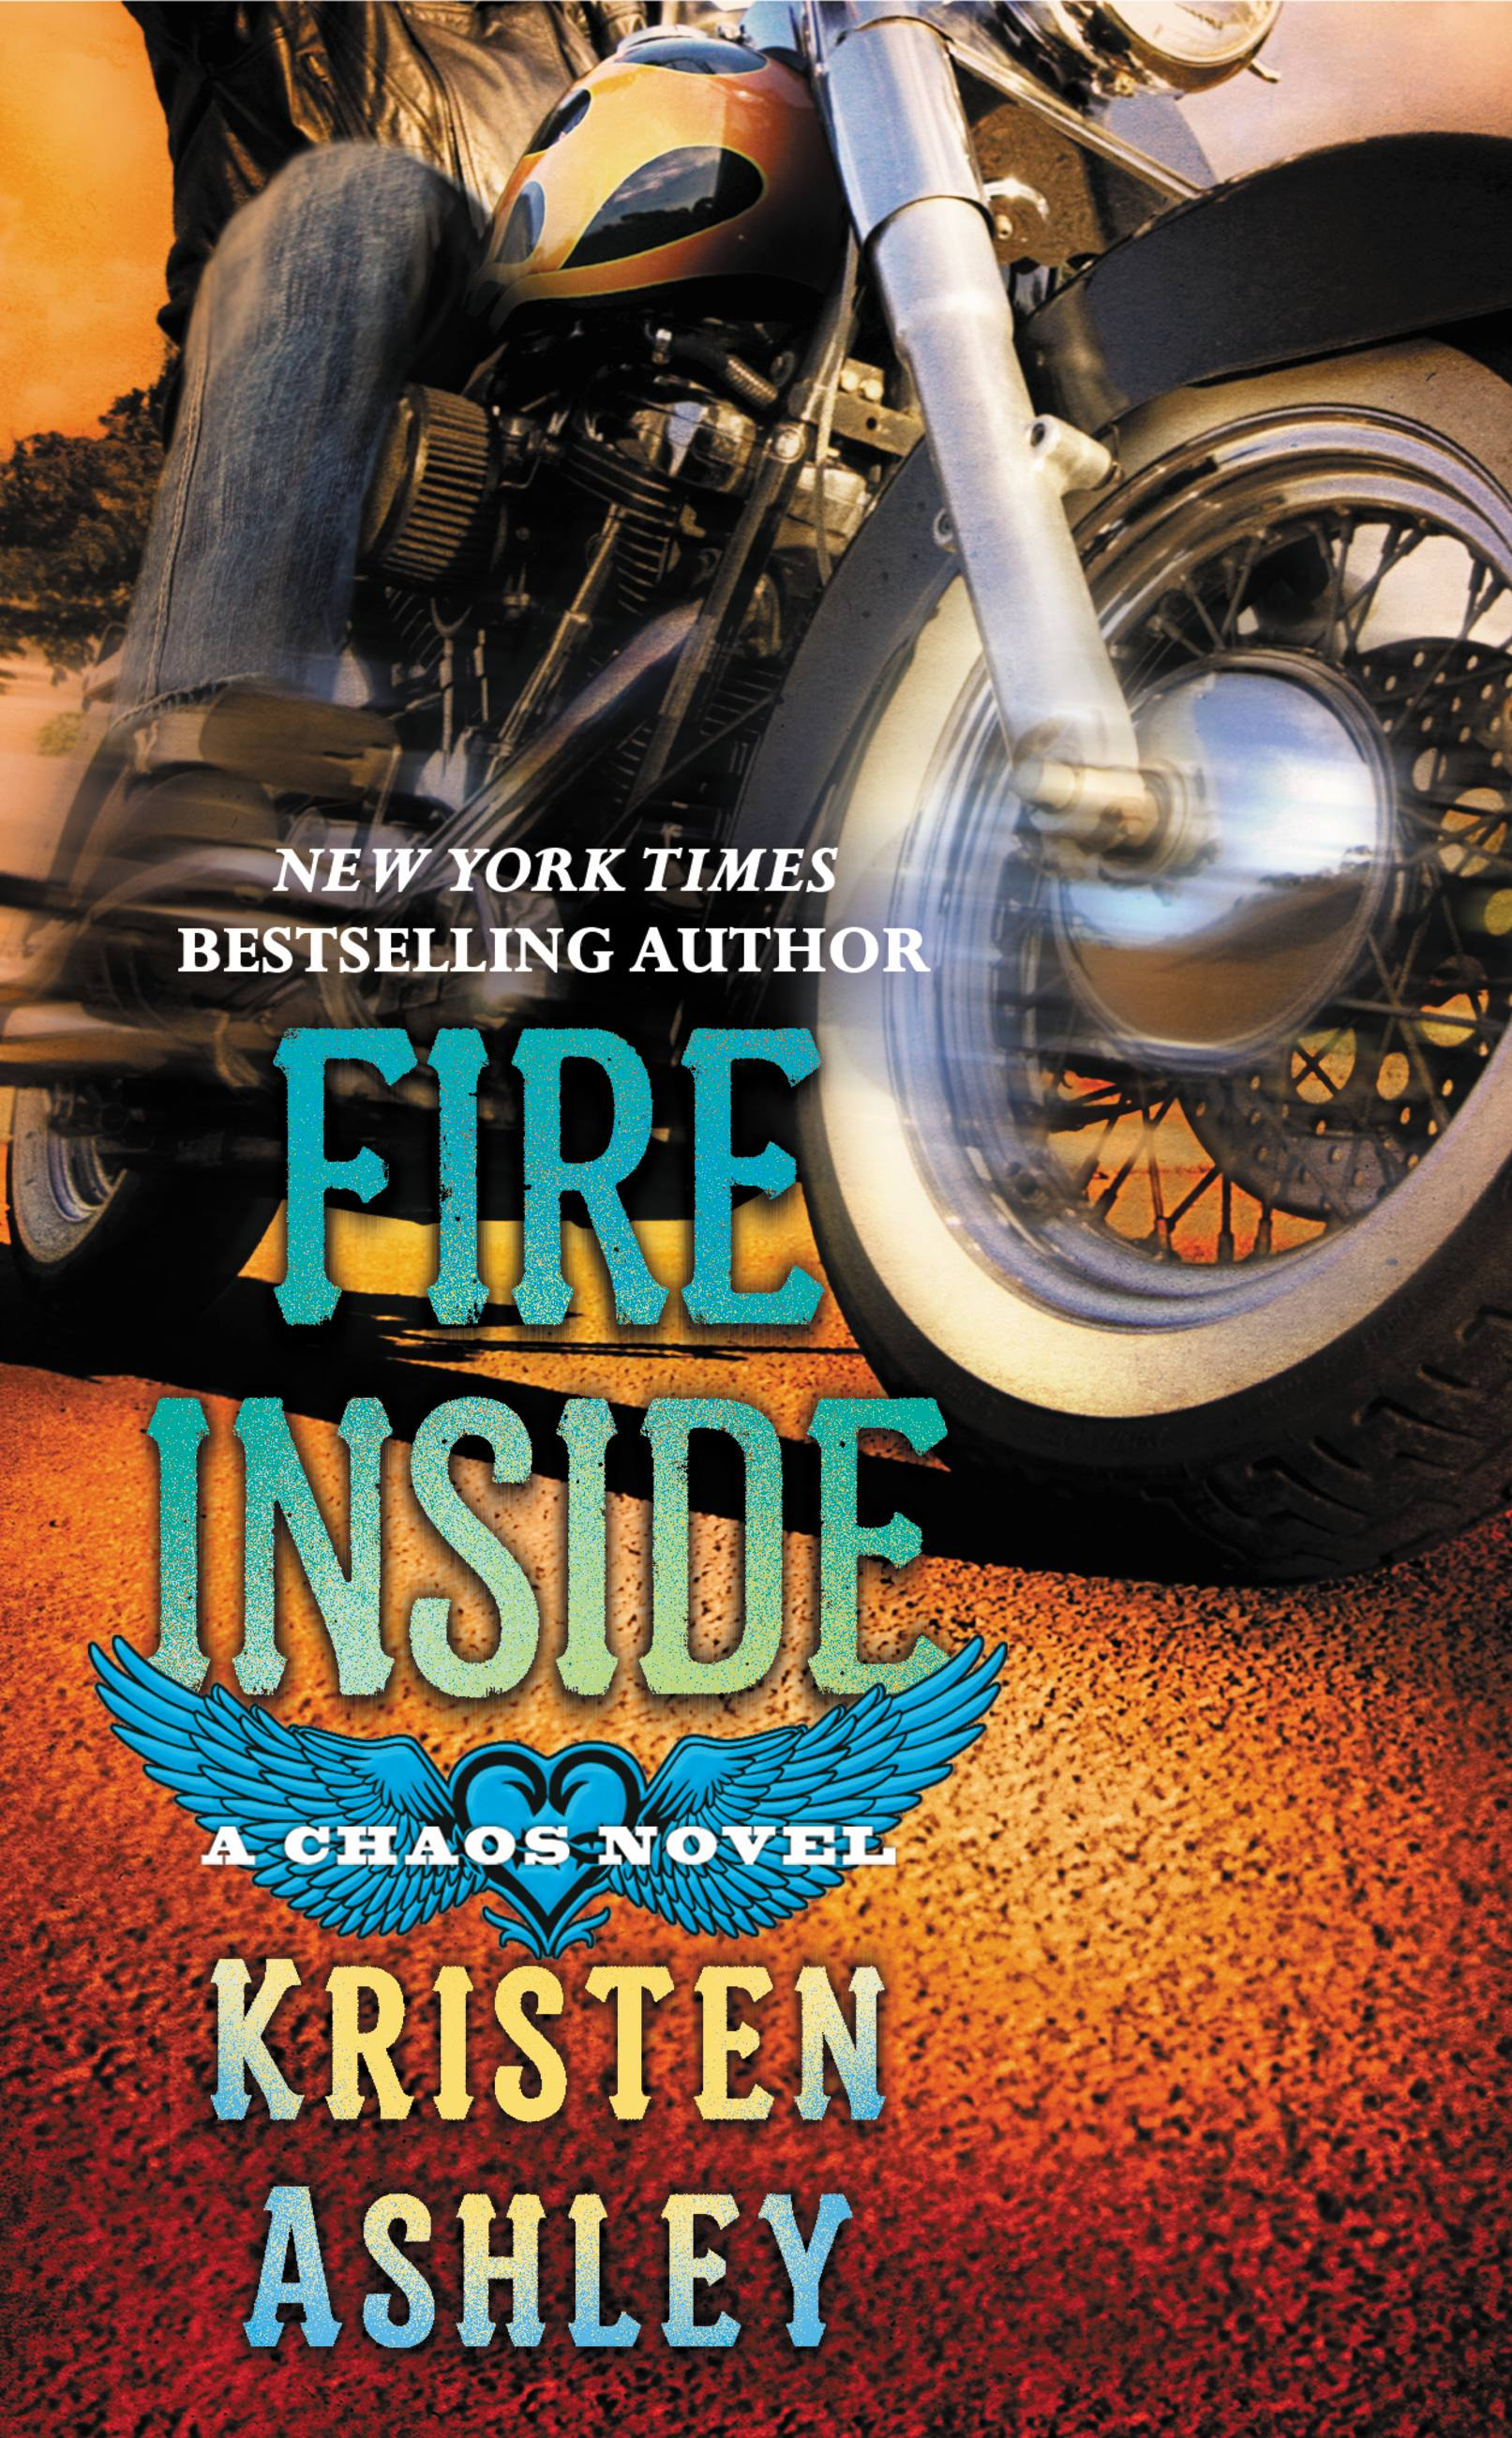 Fire inside : a Chaos novel